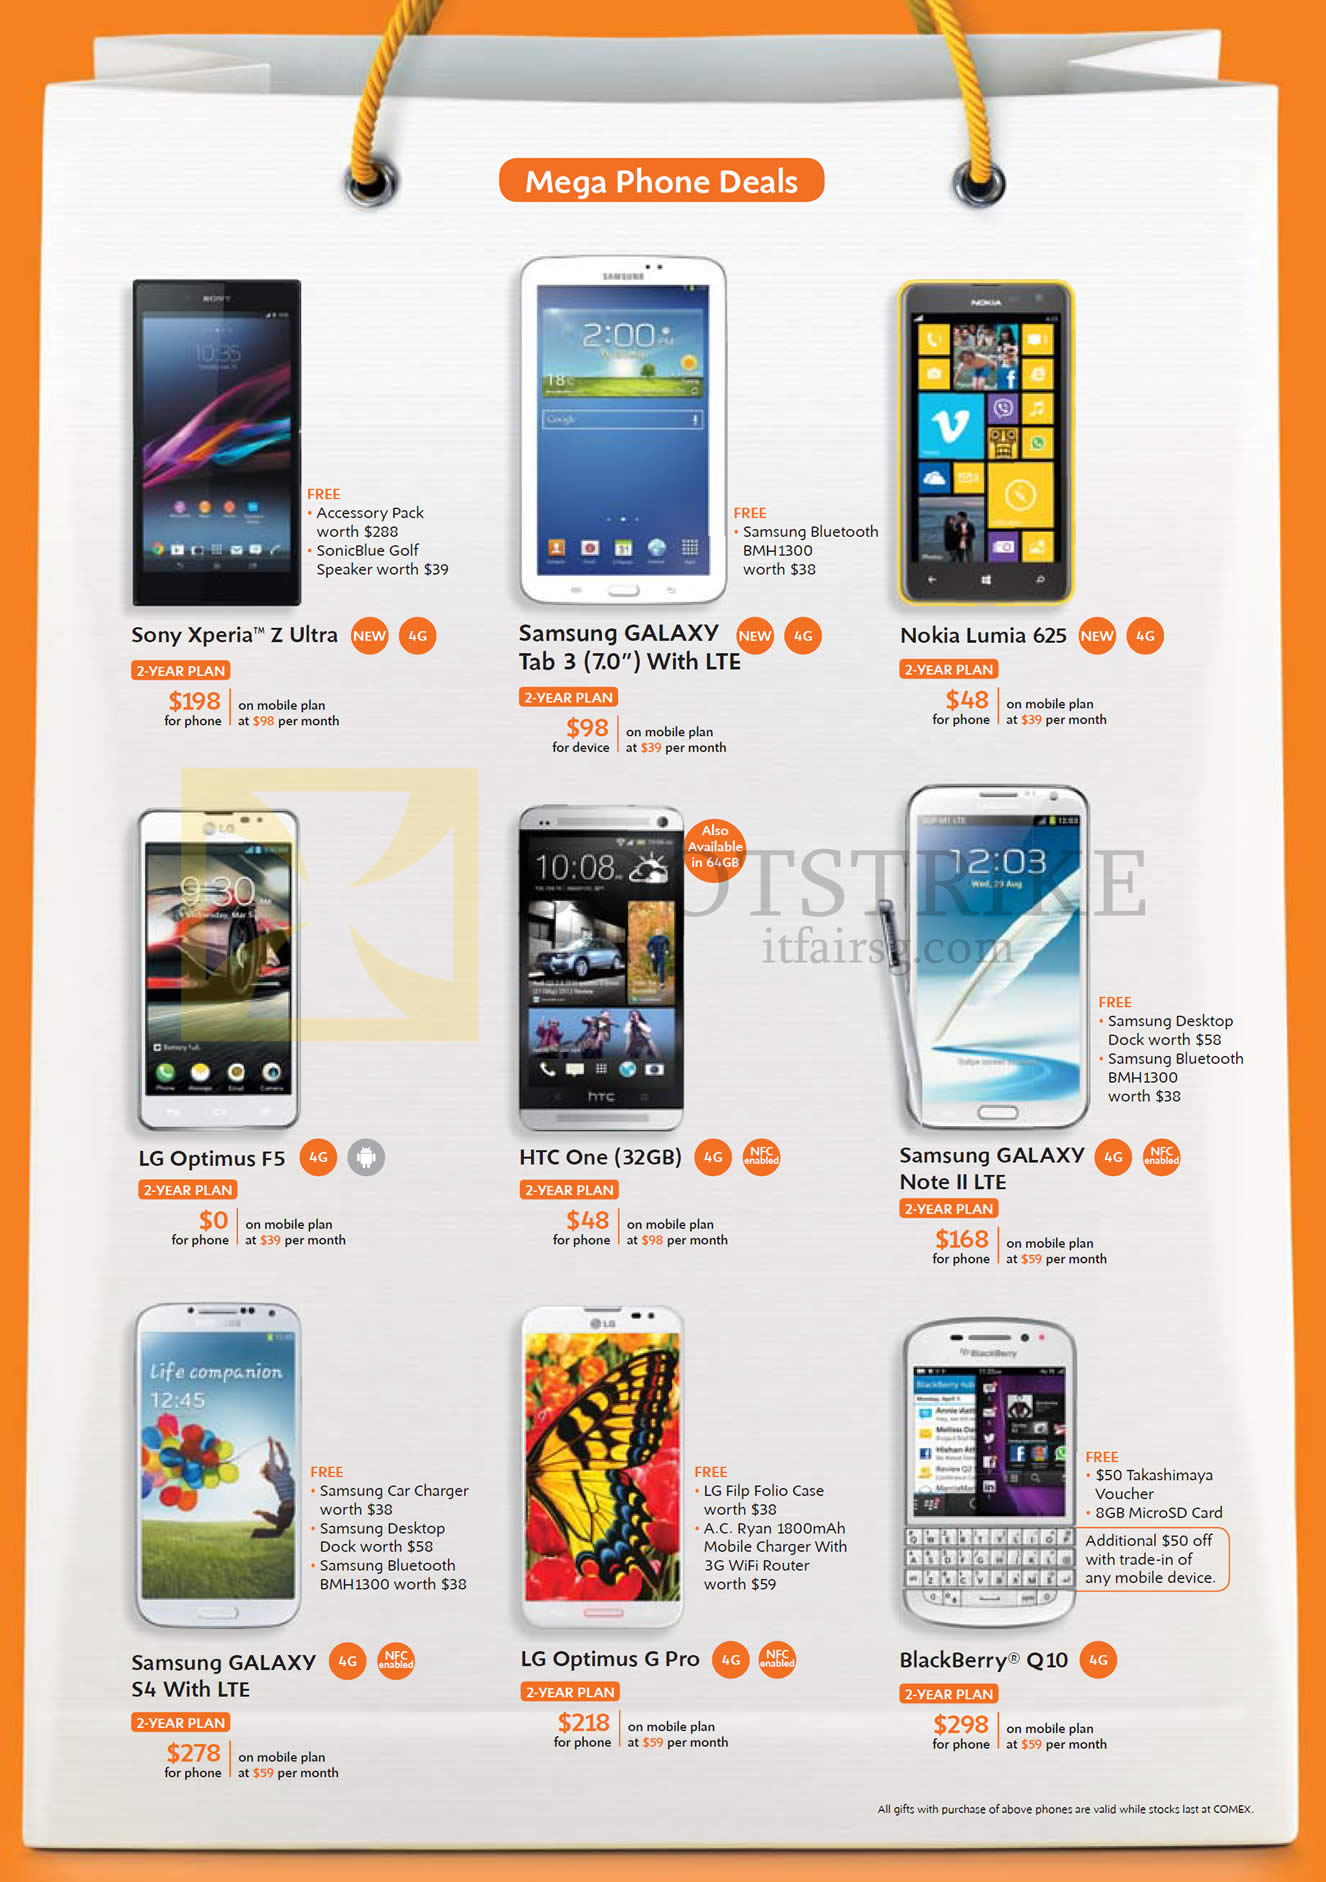 COMEX 2013 price list image brochure of M1 Mobile Sony Xperia Z Ultra, Samsung Galaxy Tab 3 7.0, Note II LTE, S4, LG Optimus G Pro, F5, Nokia Lumia 625, HTC One, Blackberry Q10